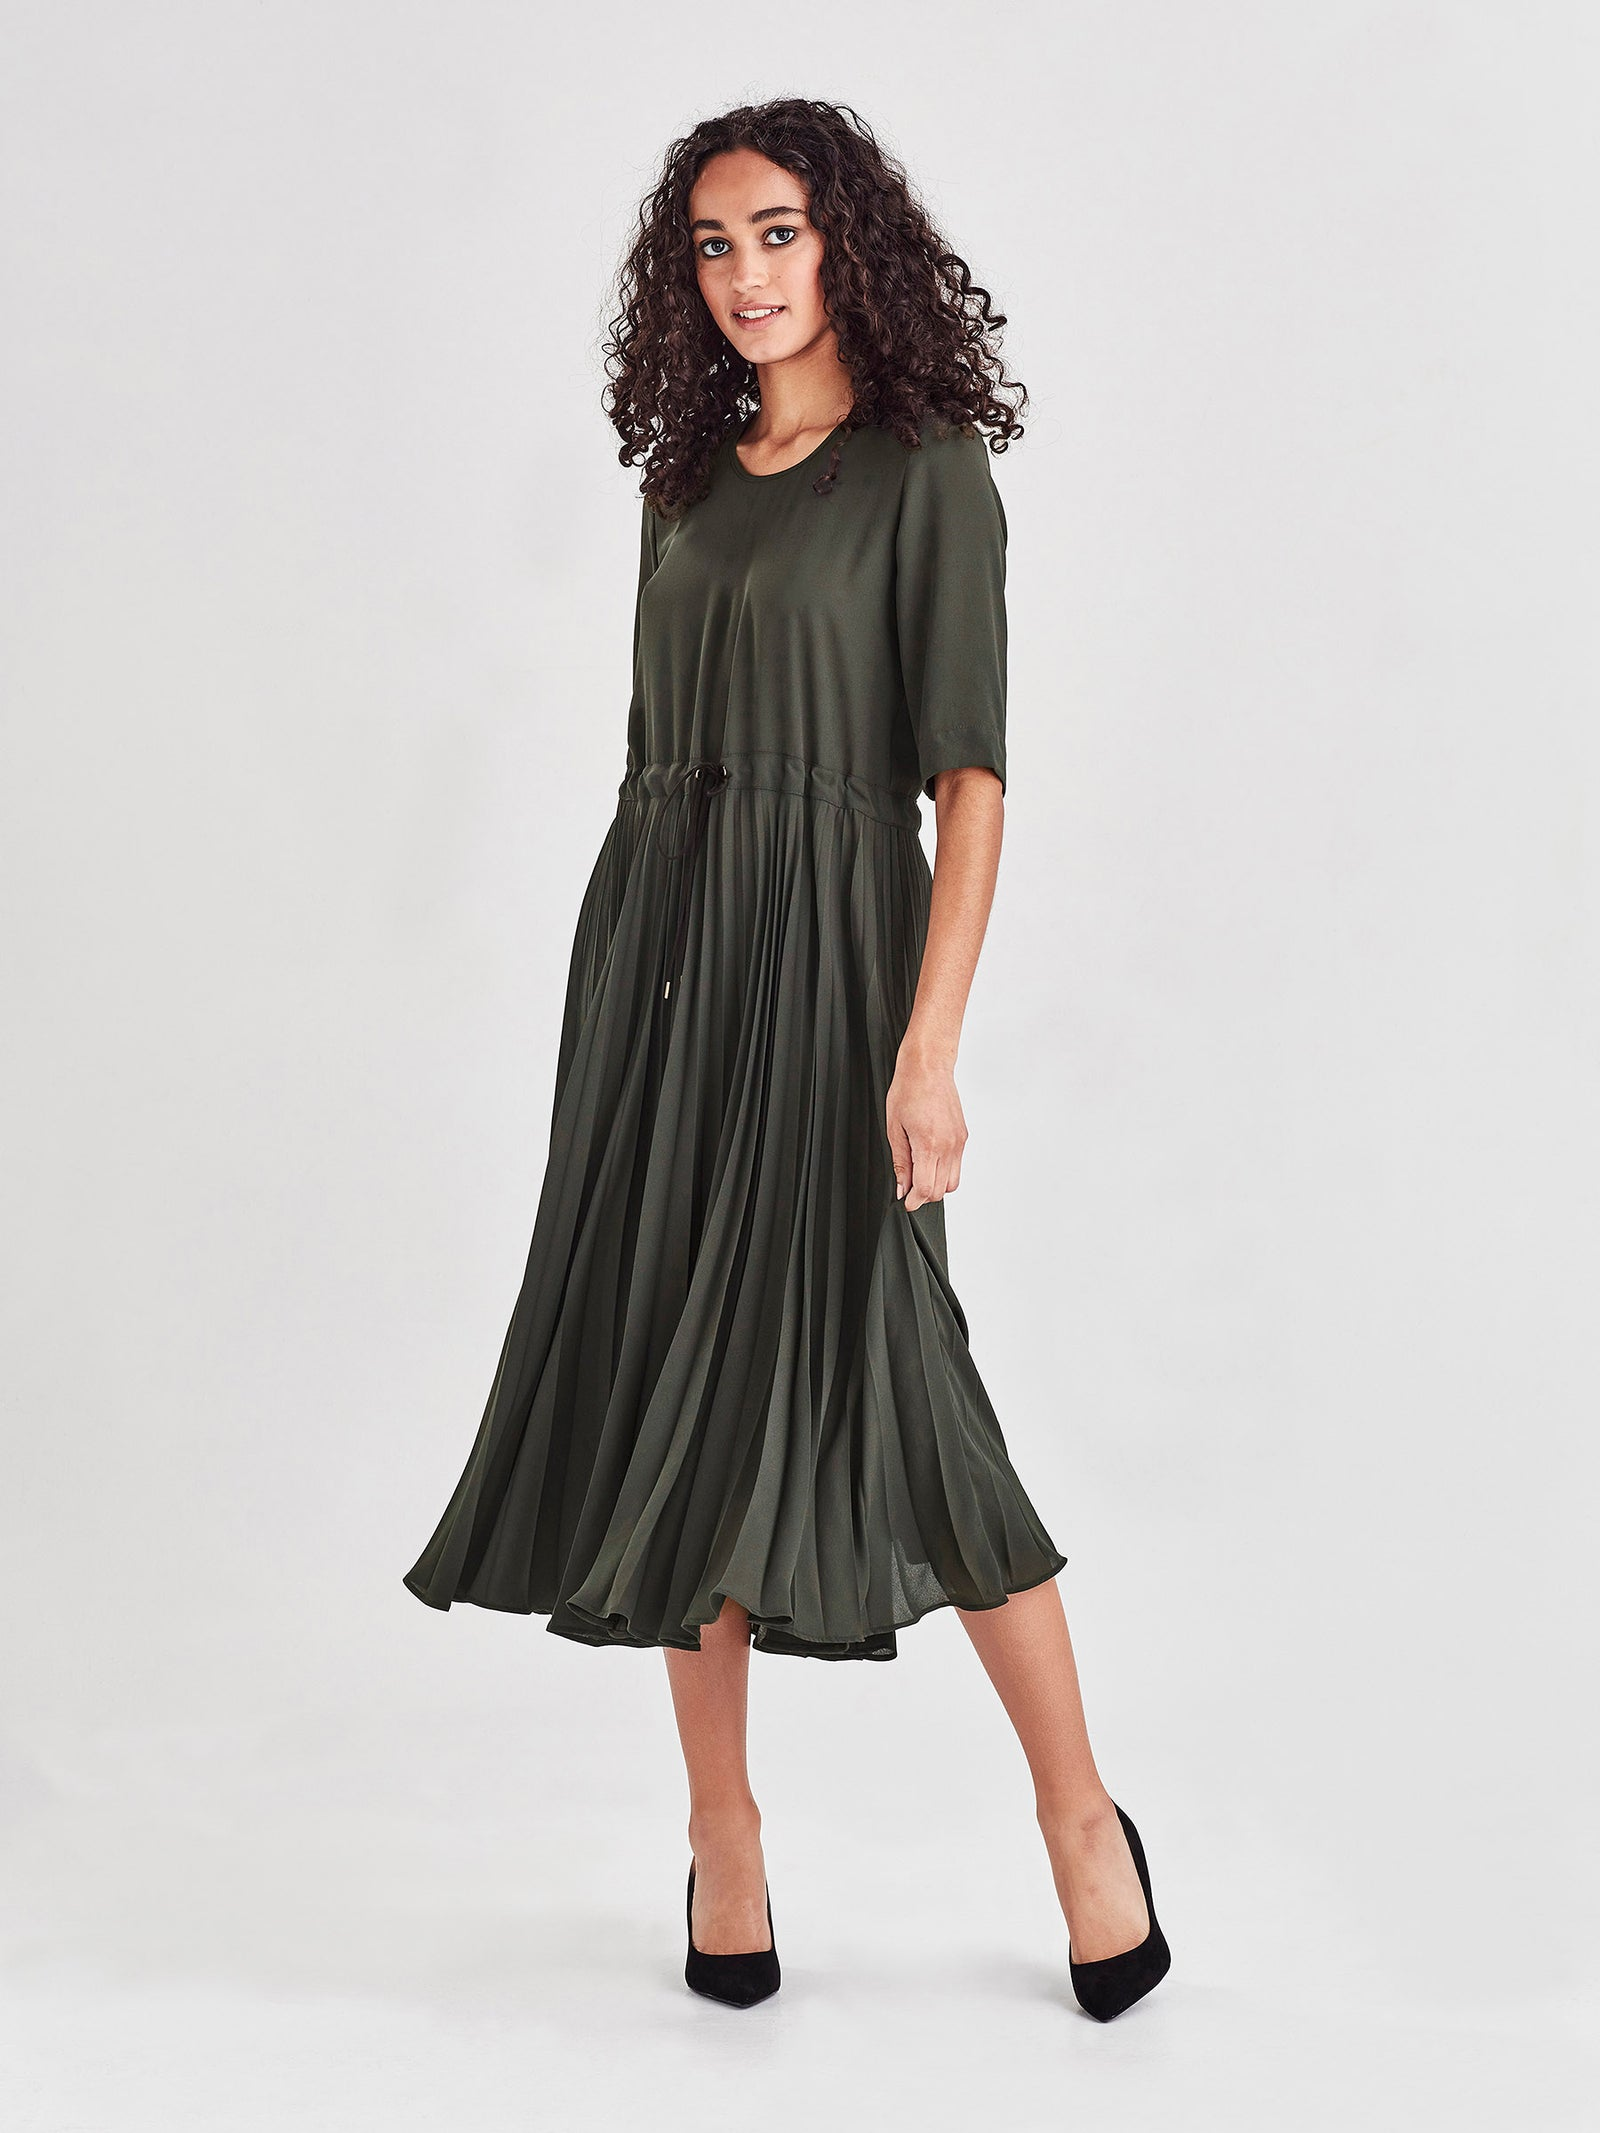 Betsy Pleat Dress (Matte Pleat) Forest